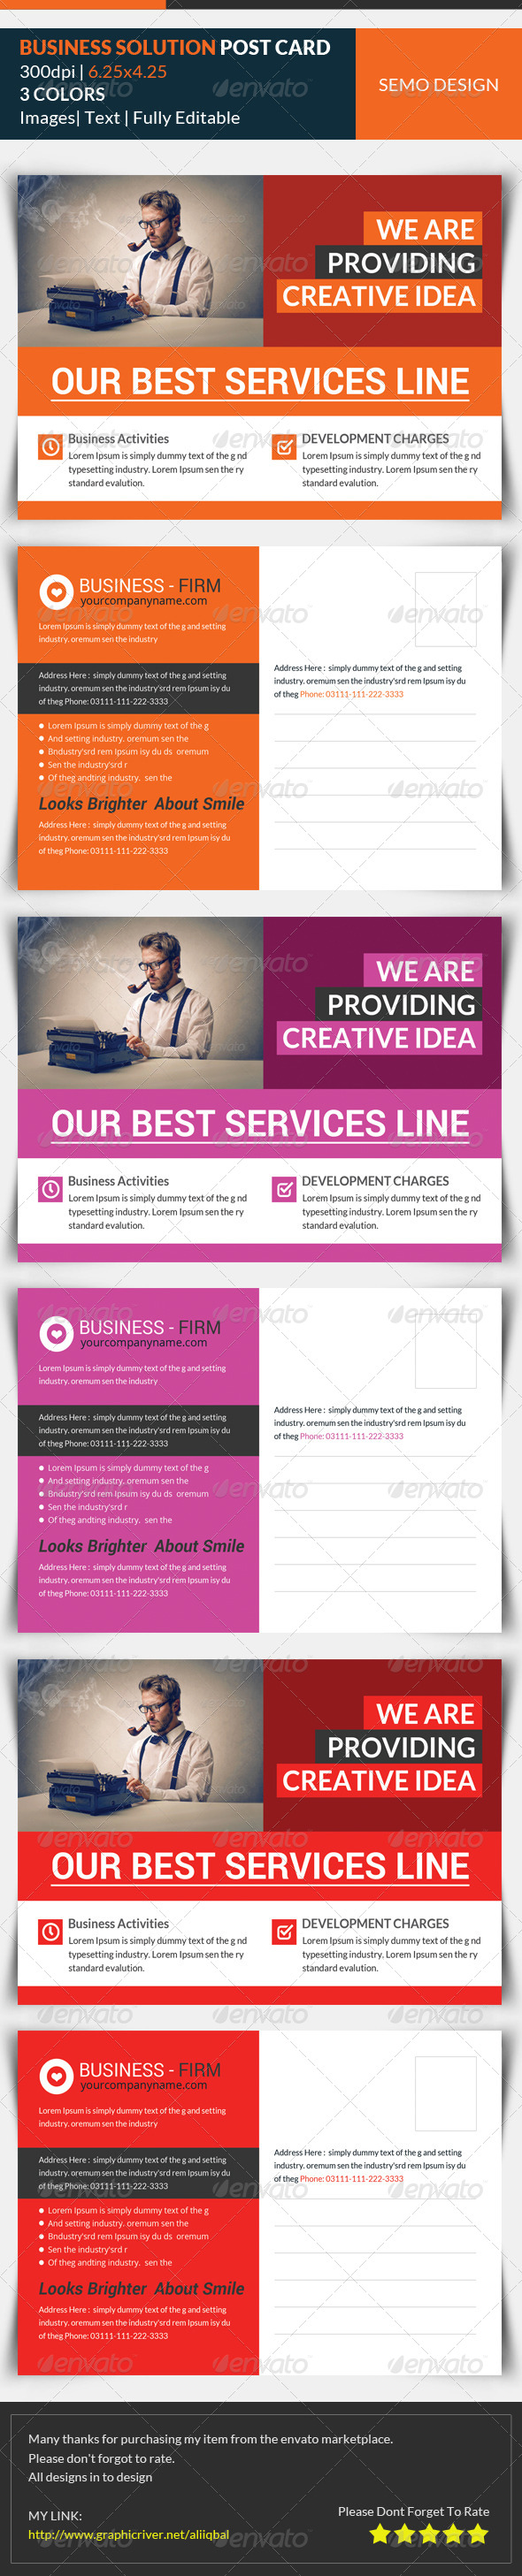 GraphicRiver Business Solution Postcard Template 8145654